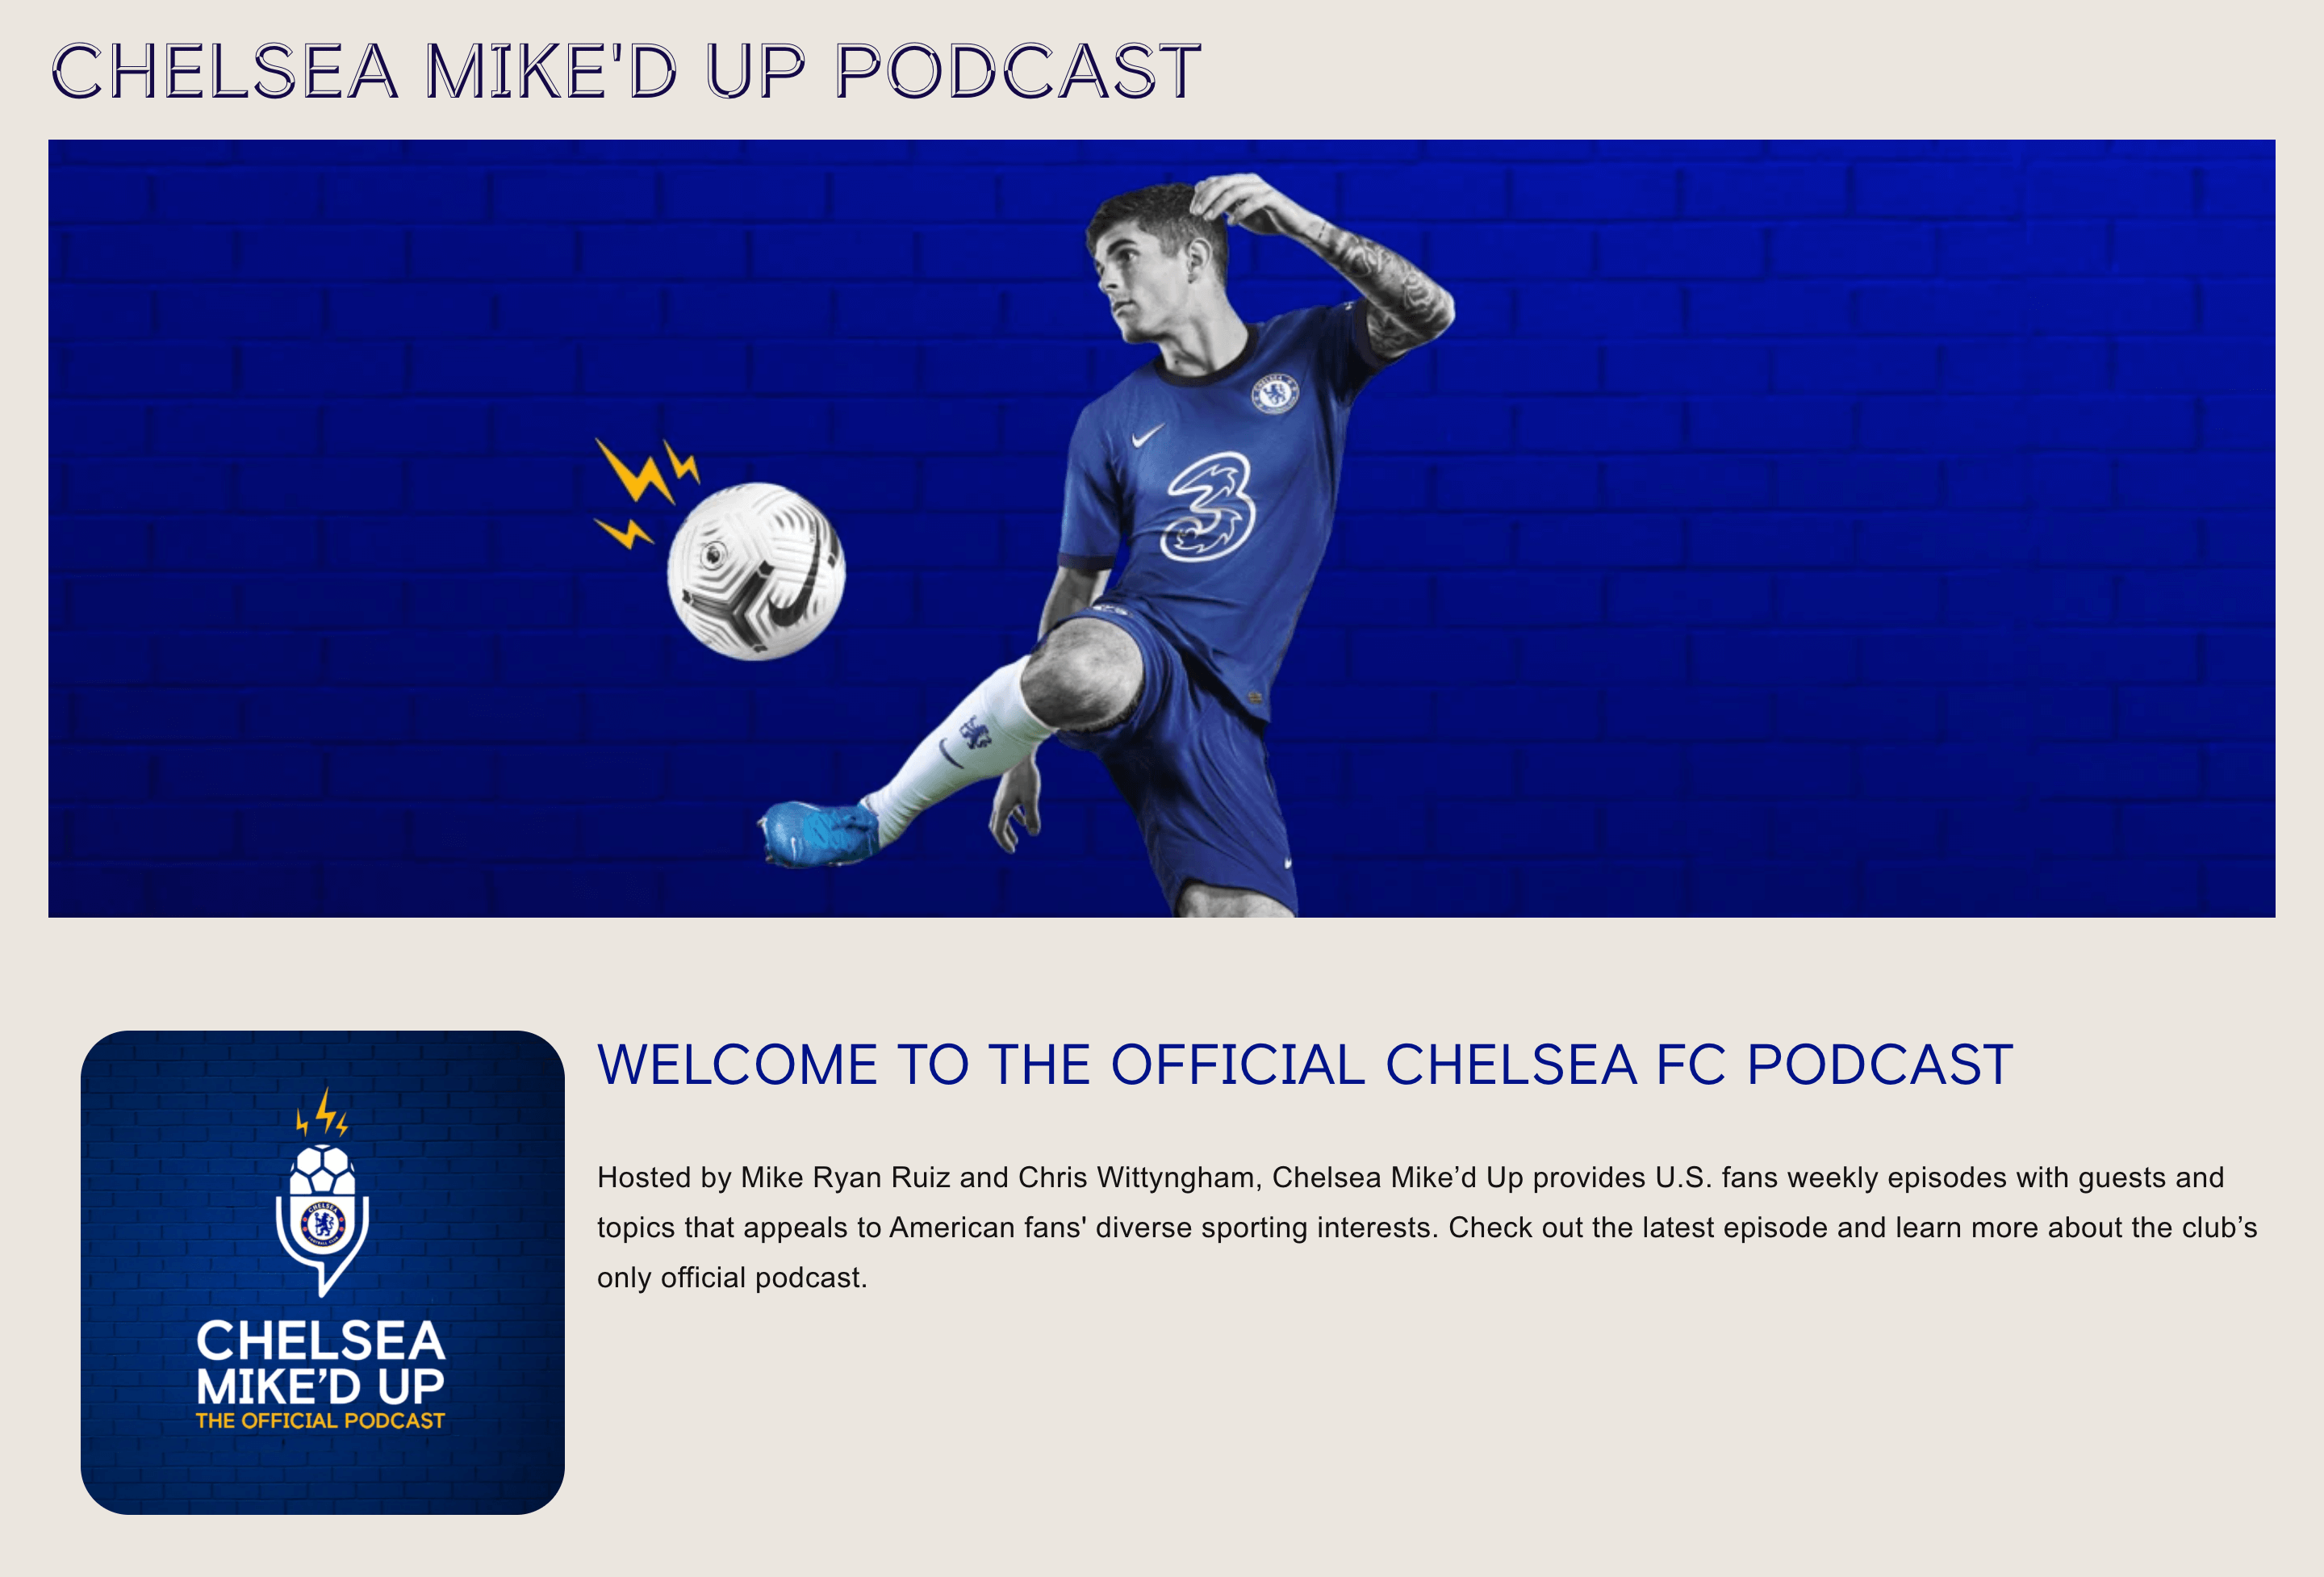 Chelsea Miked Up Podcast